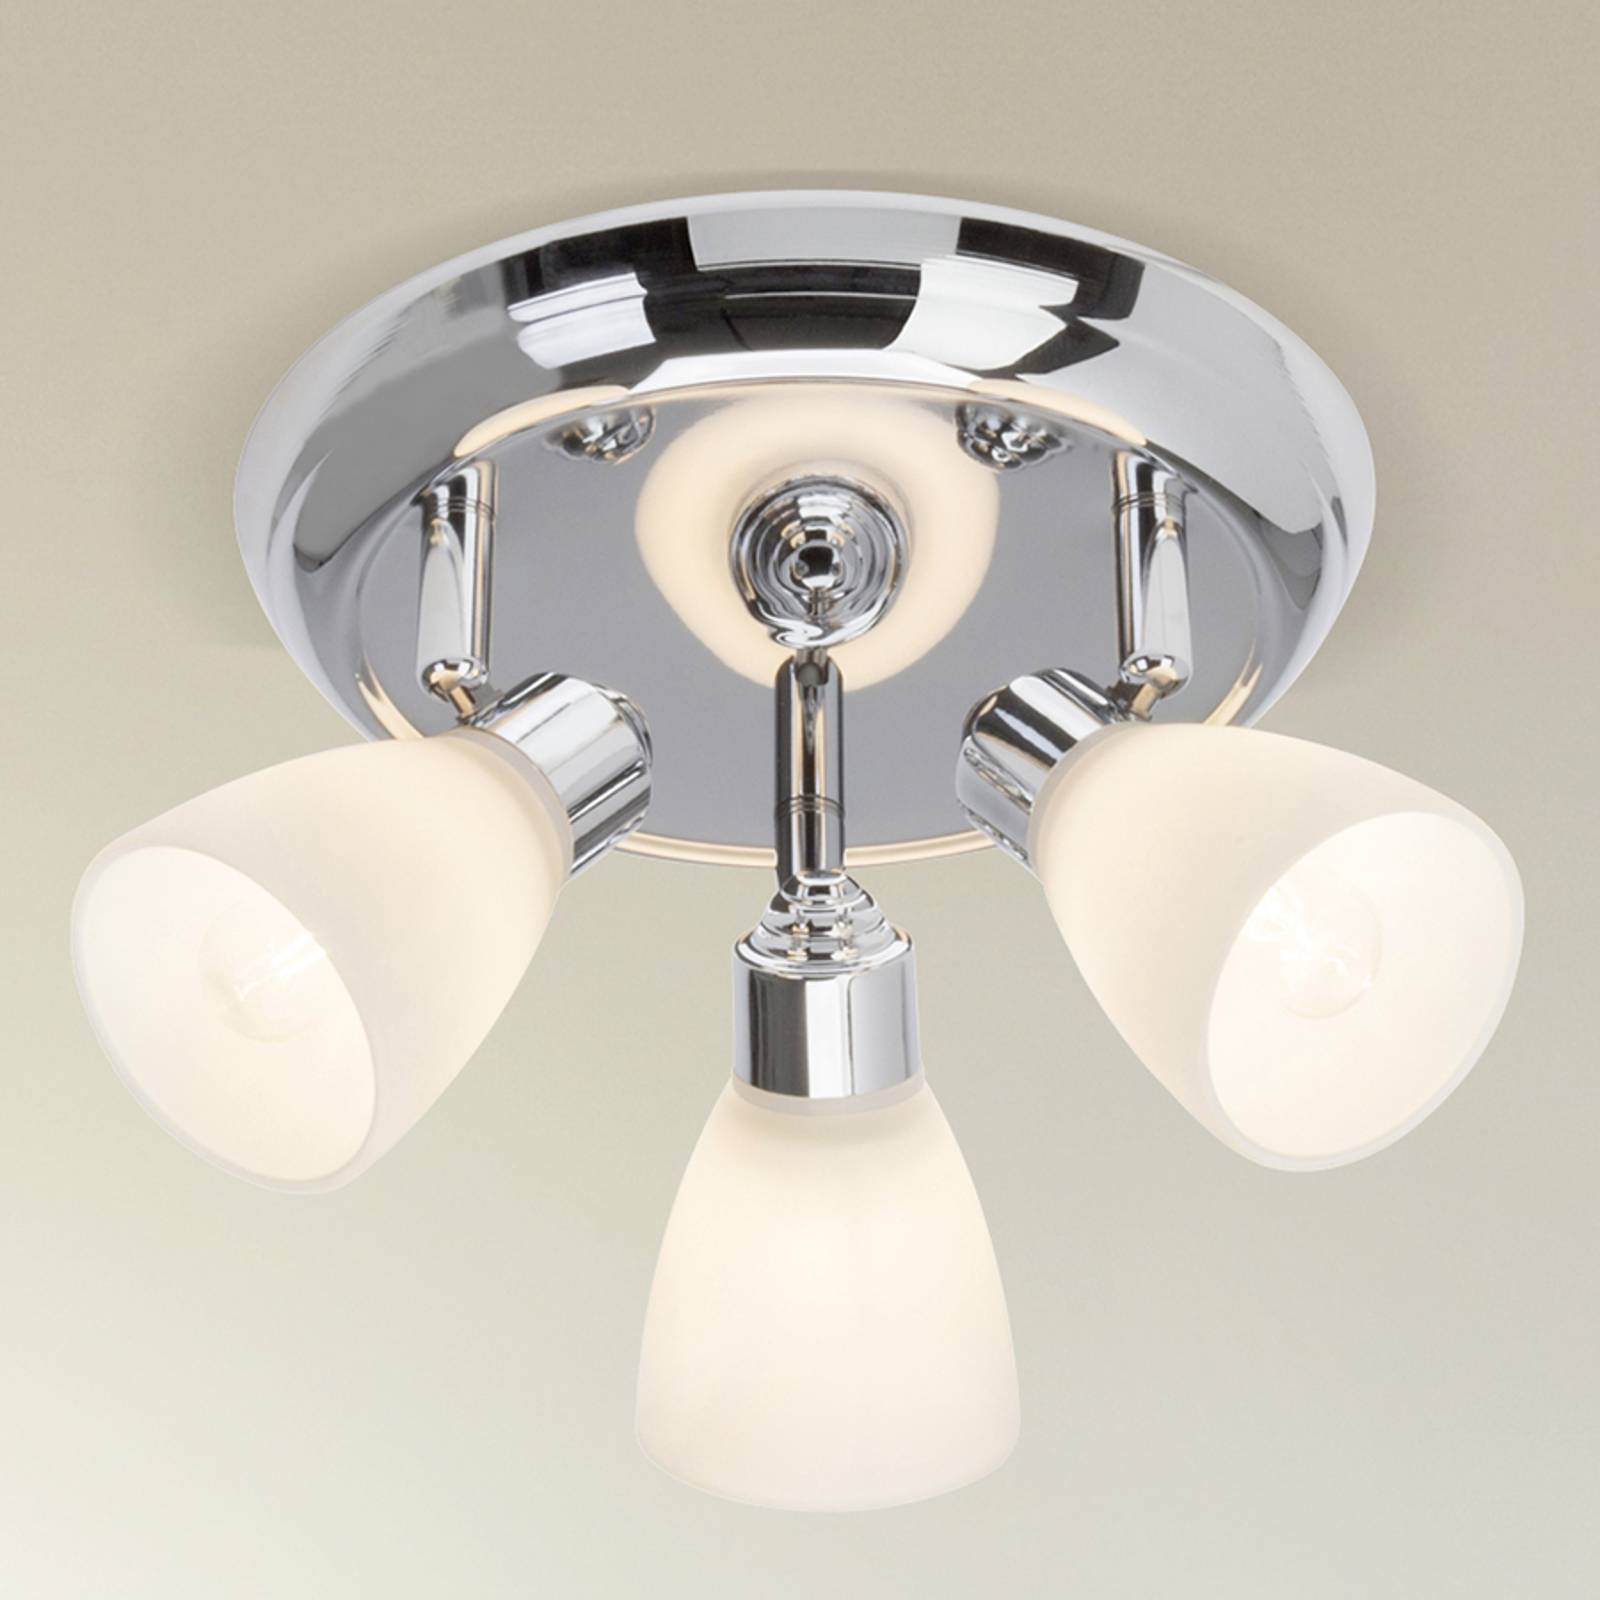 Kensington 3-bulb circular ceiling spotlight from Brilliant